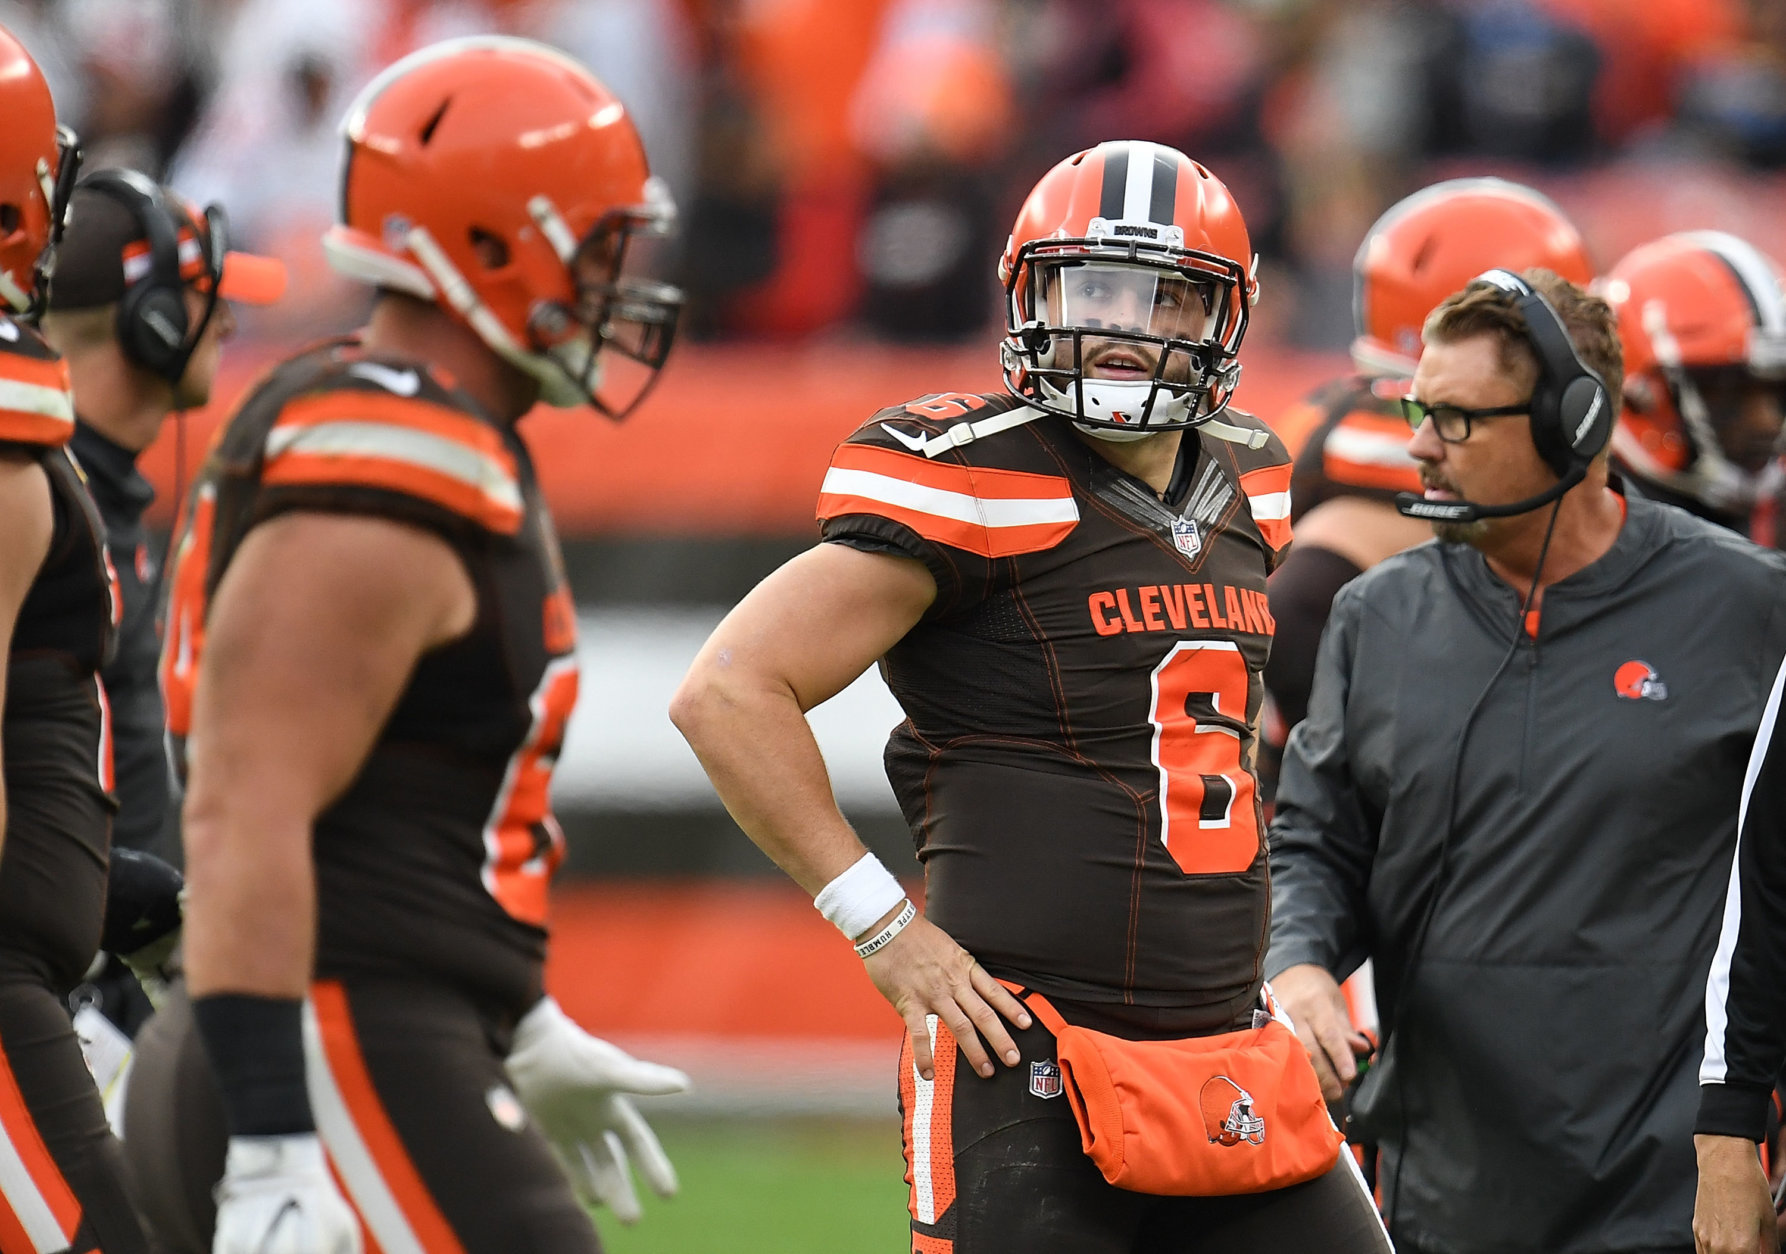 CLEVELAND, OH - NOVEMBER 04:  Baker Mayfield #6 of the Cleveland Browns reacts after throwing an interception during the fourth quarter against the Kansas City Chiefs at FirstEnergy Stadium on November 4, 2018 in Cleveland, Ohio. (Photo by Jason Miller/Getty Images)